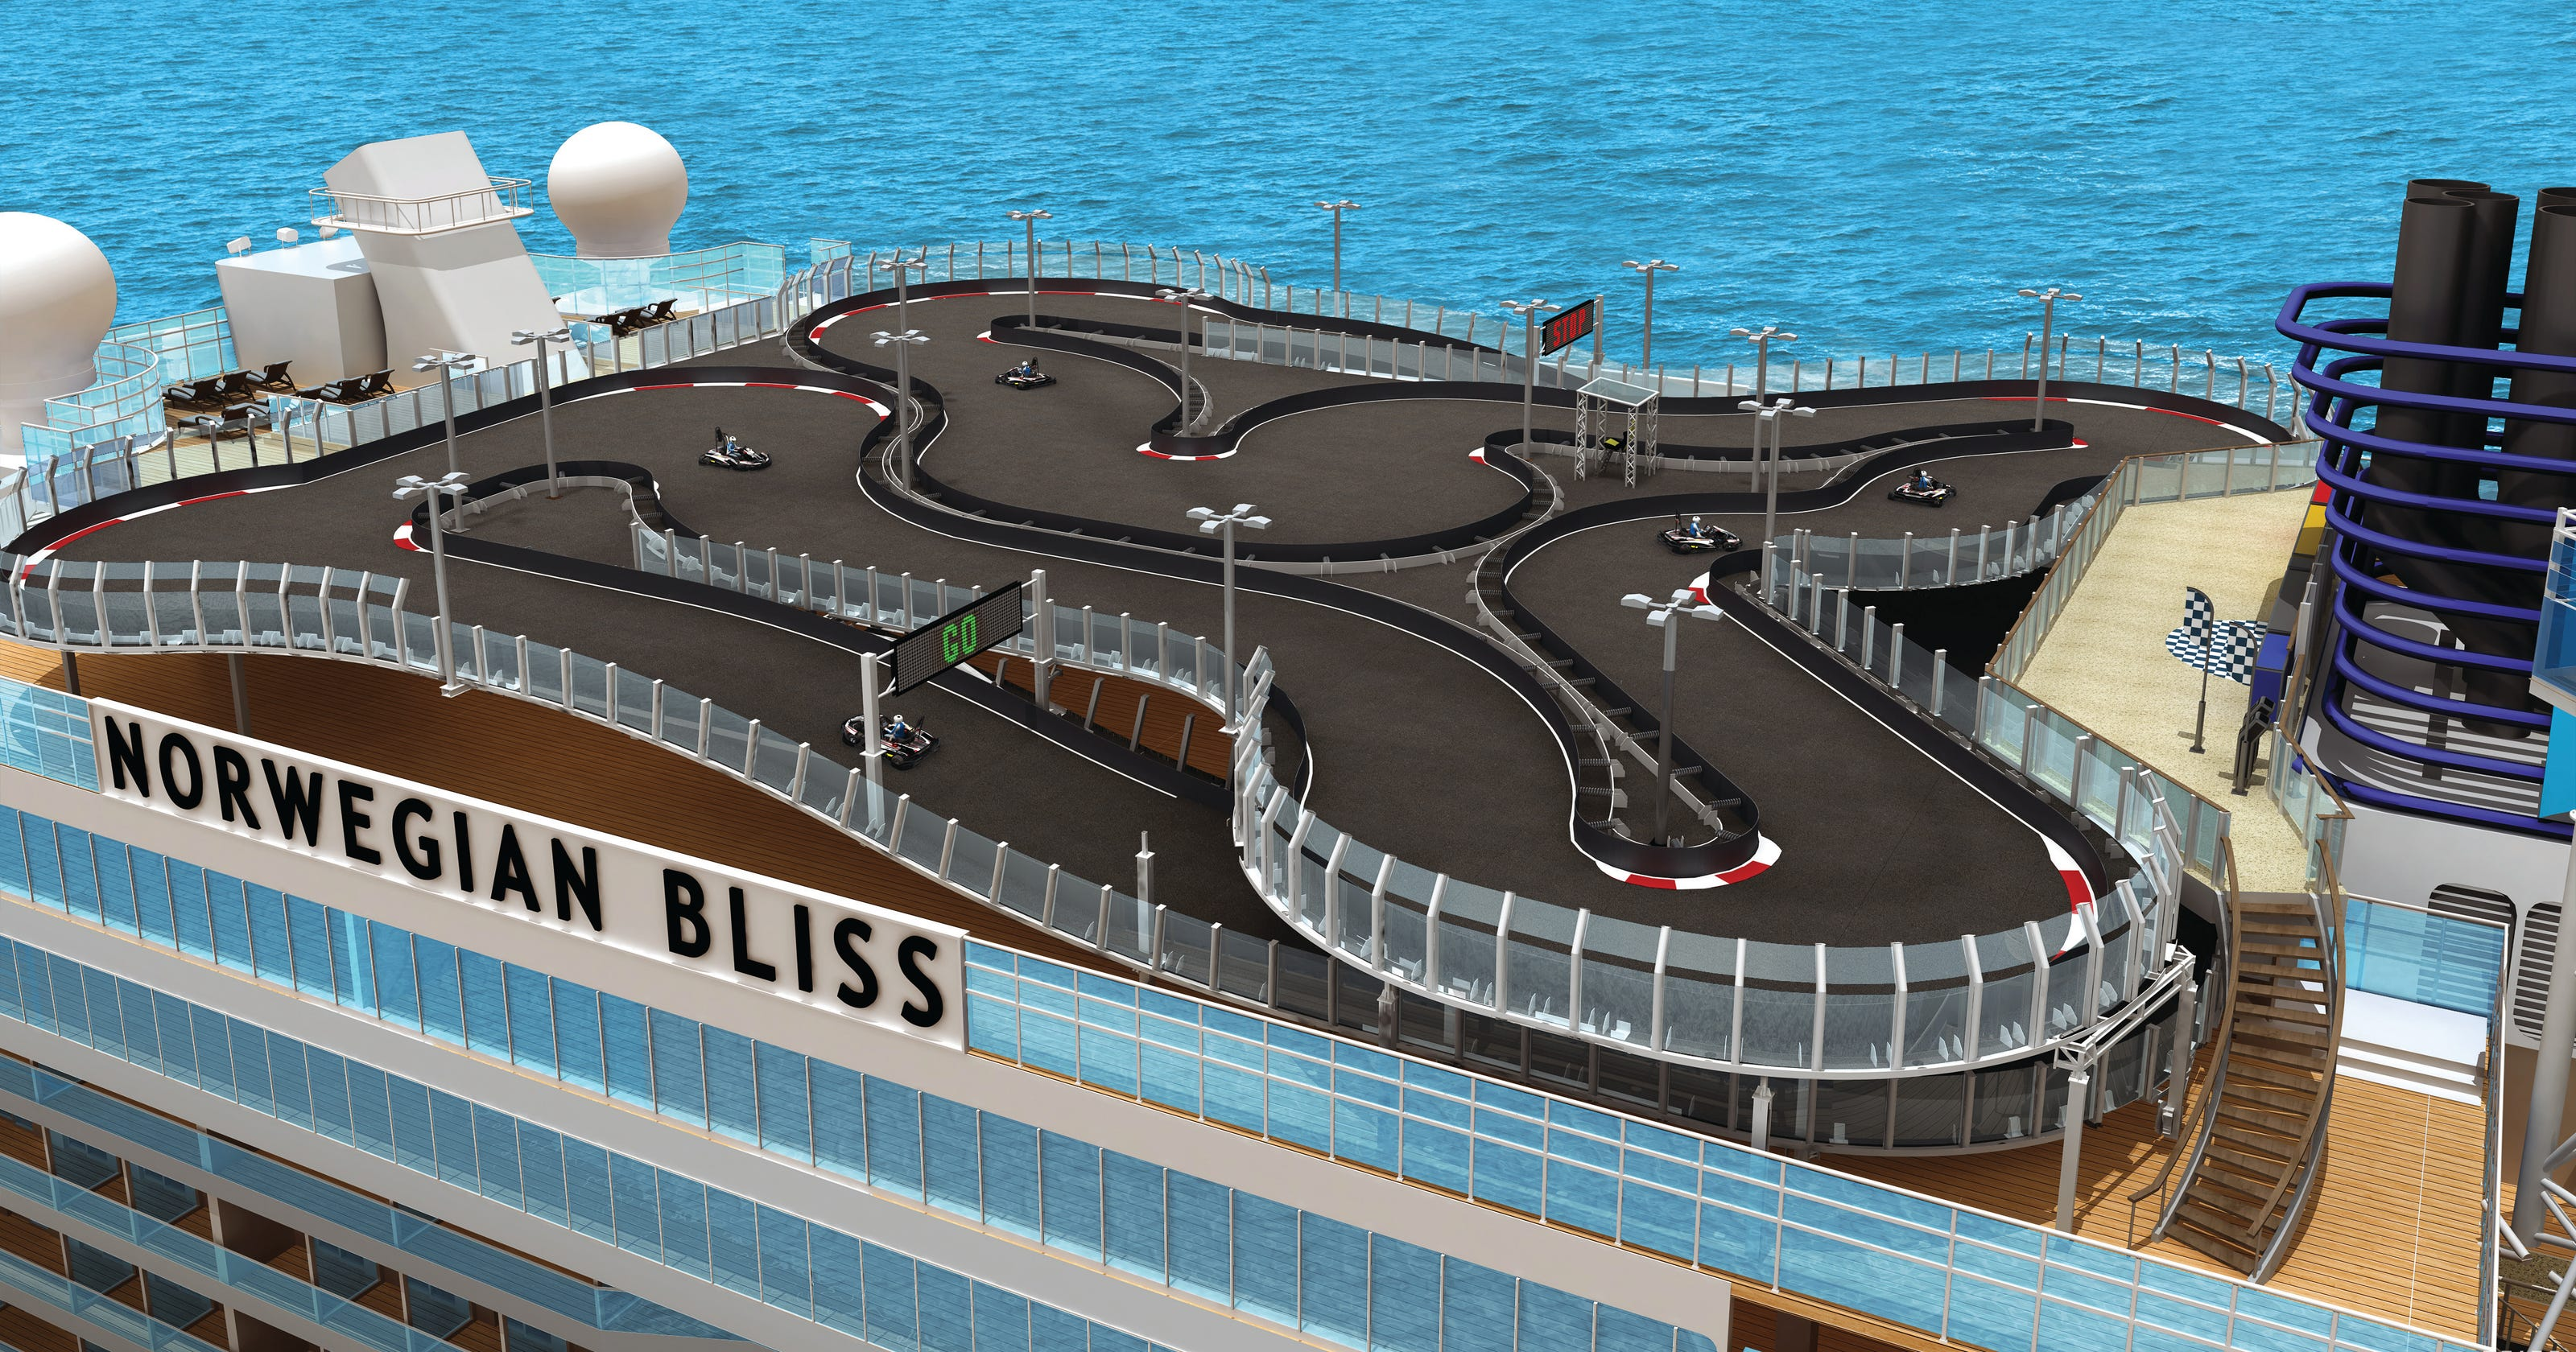 Norwegian Cruise Line Reveals Plans For New Ship Bliss